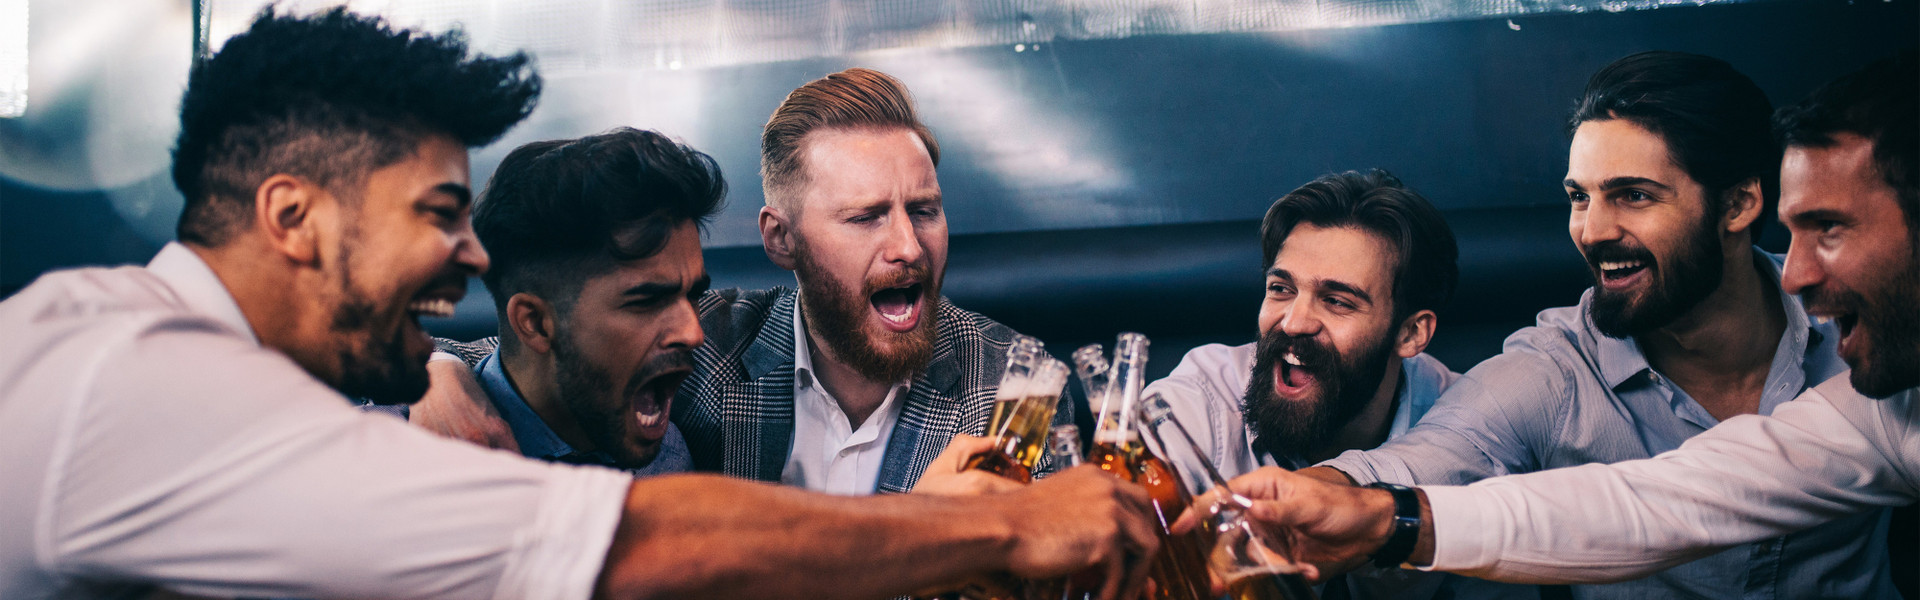 Your Bachelor Party Friendly Hotel In NYC | Bachelor Party Toast